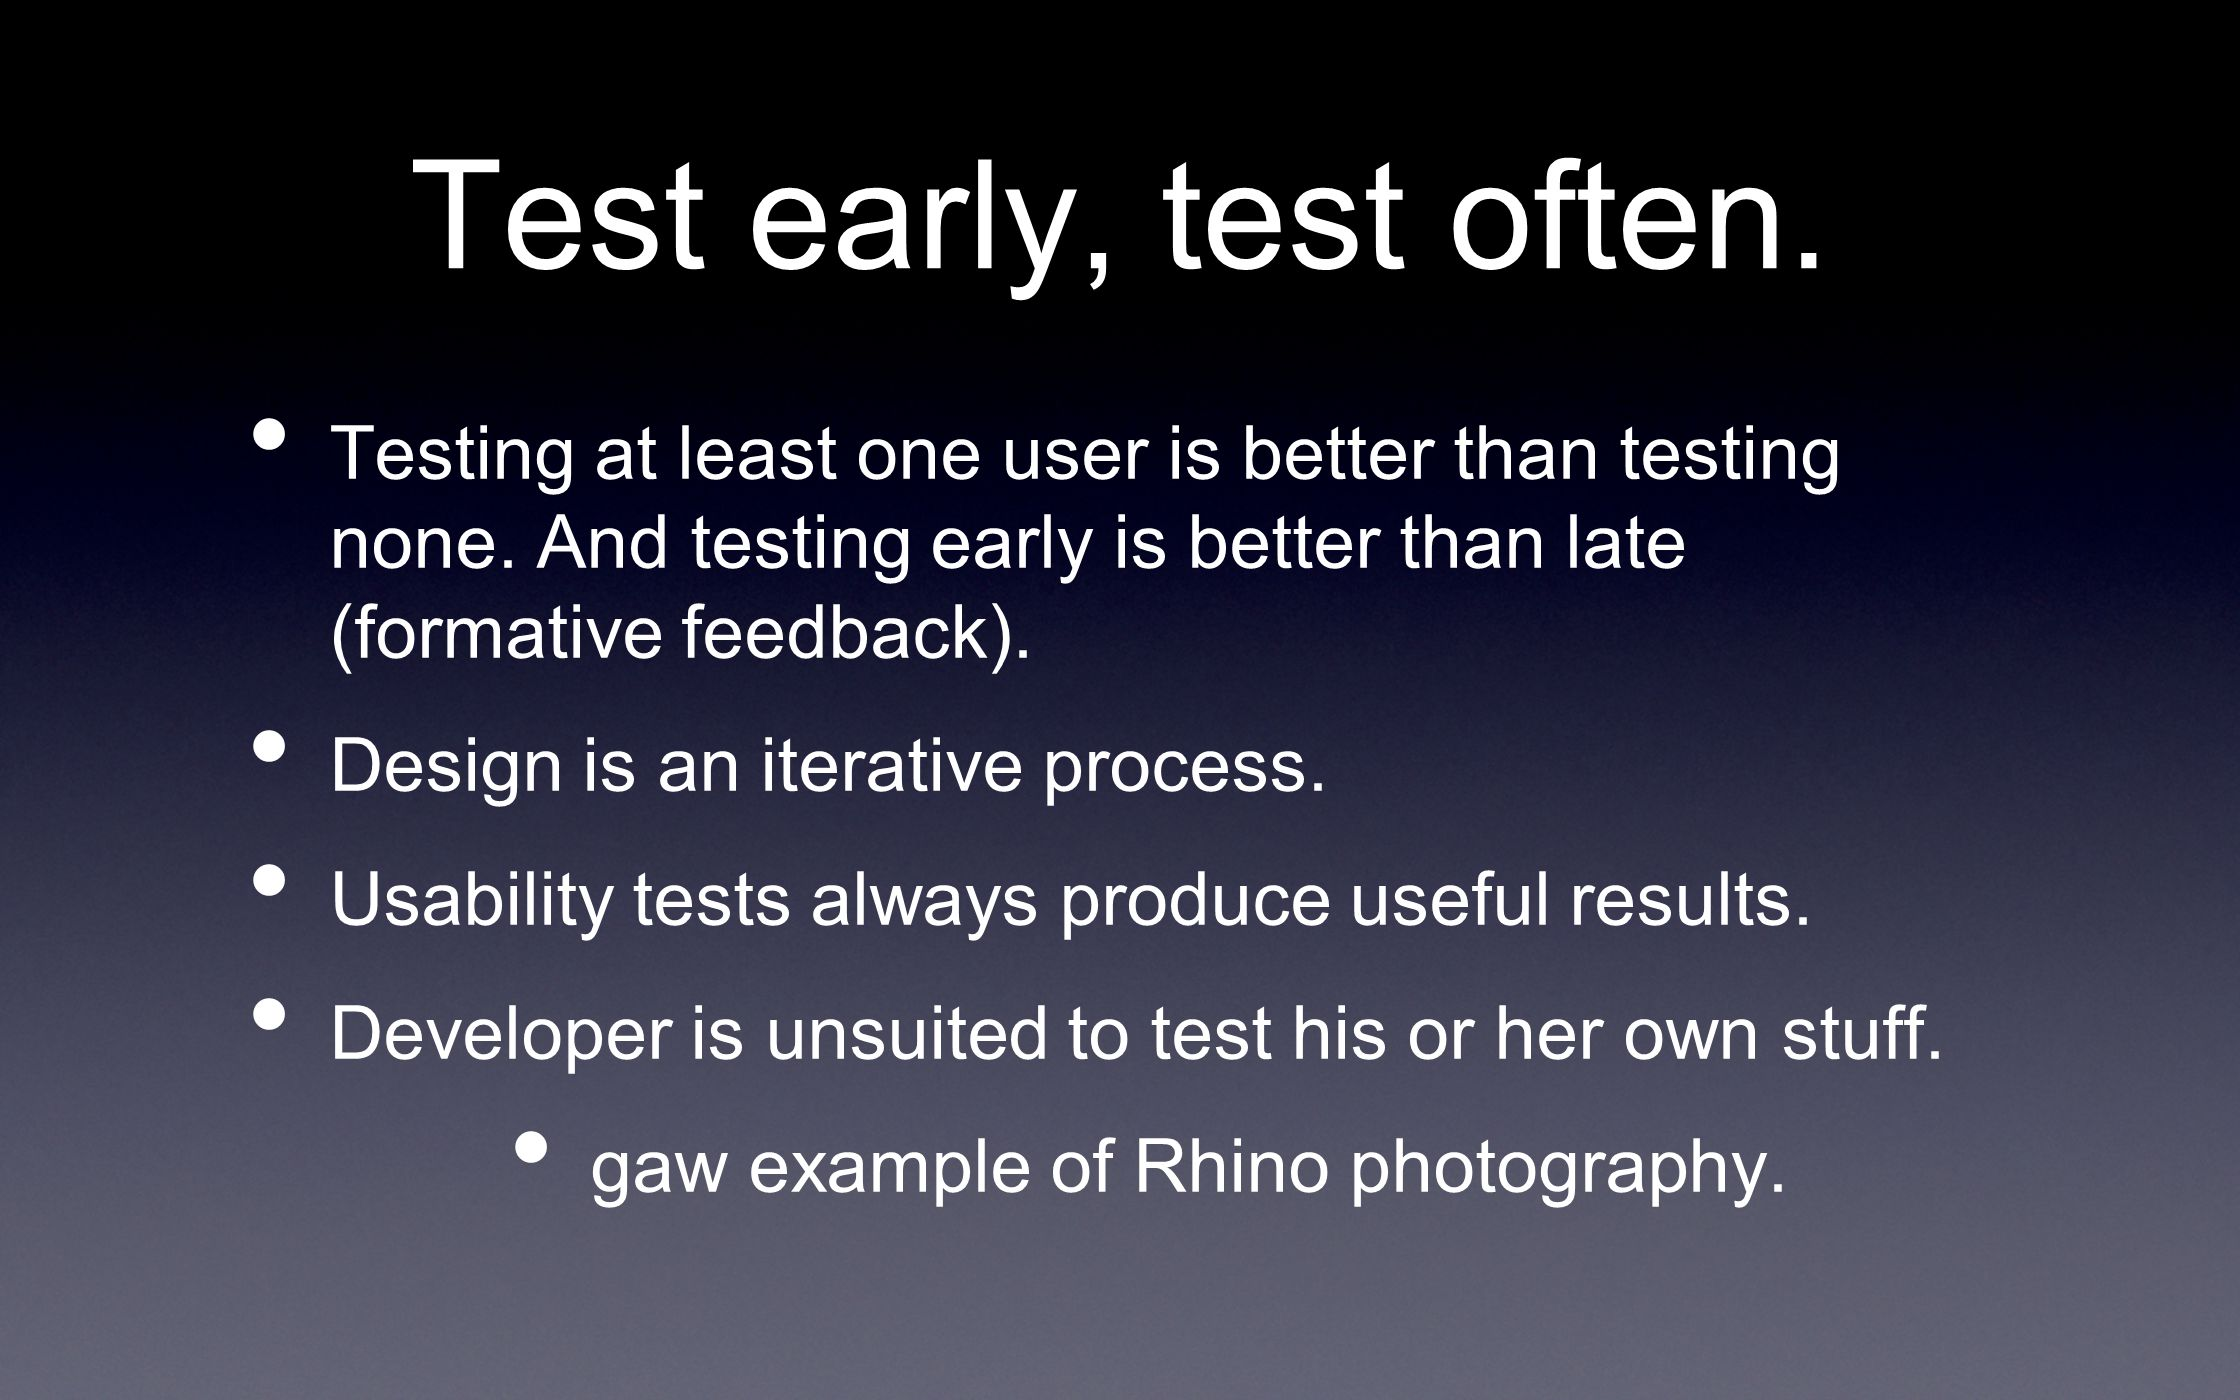 Test early, test often. Testing at least one user is better than testing none. And testing early is better than late (formative feedback).